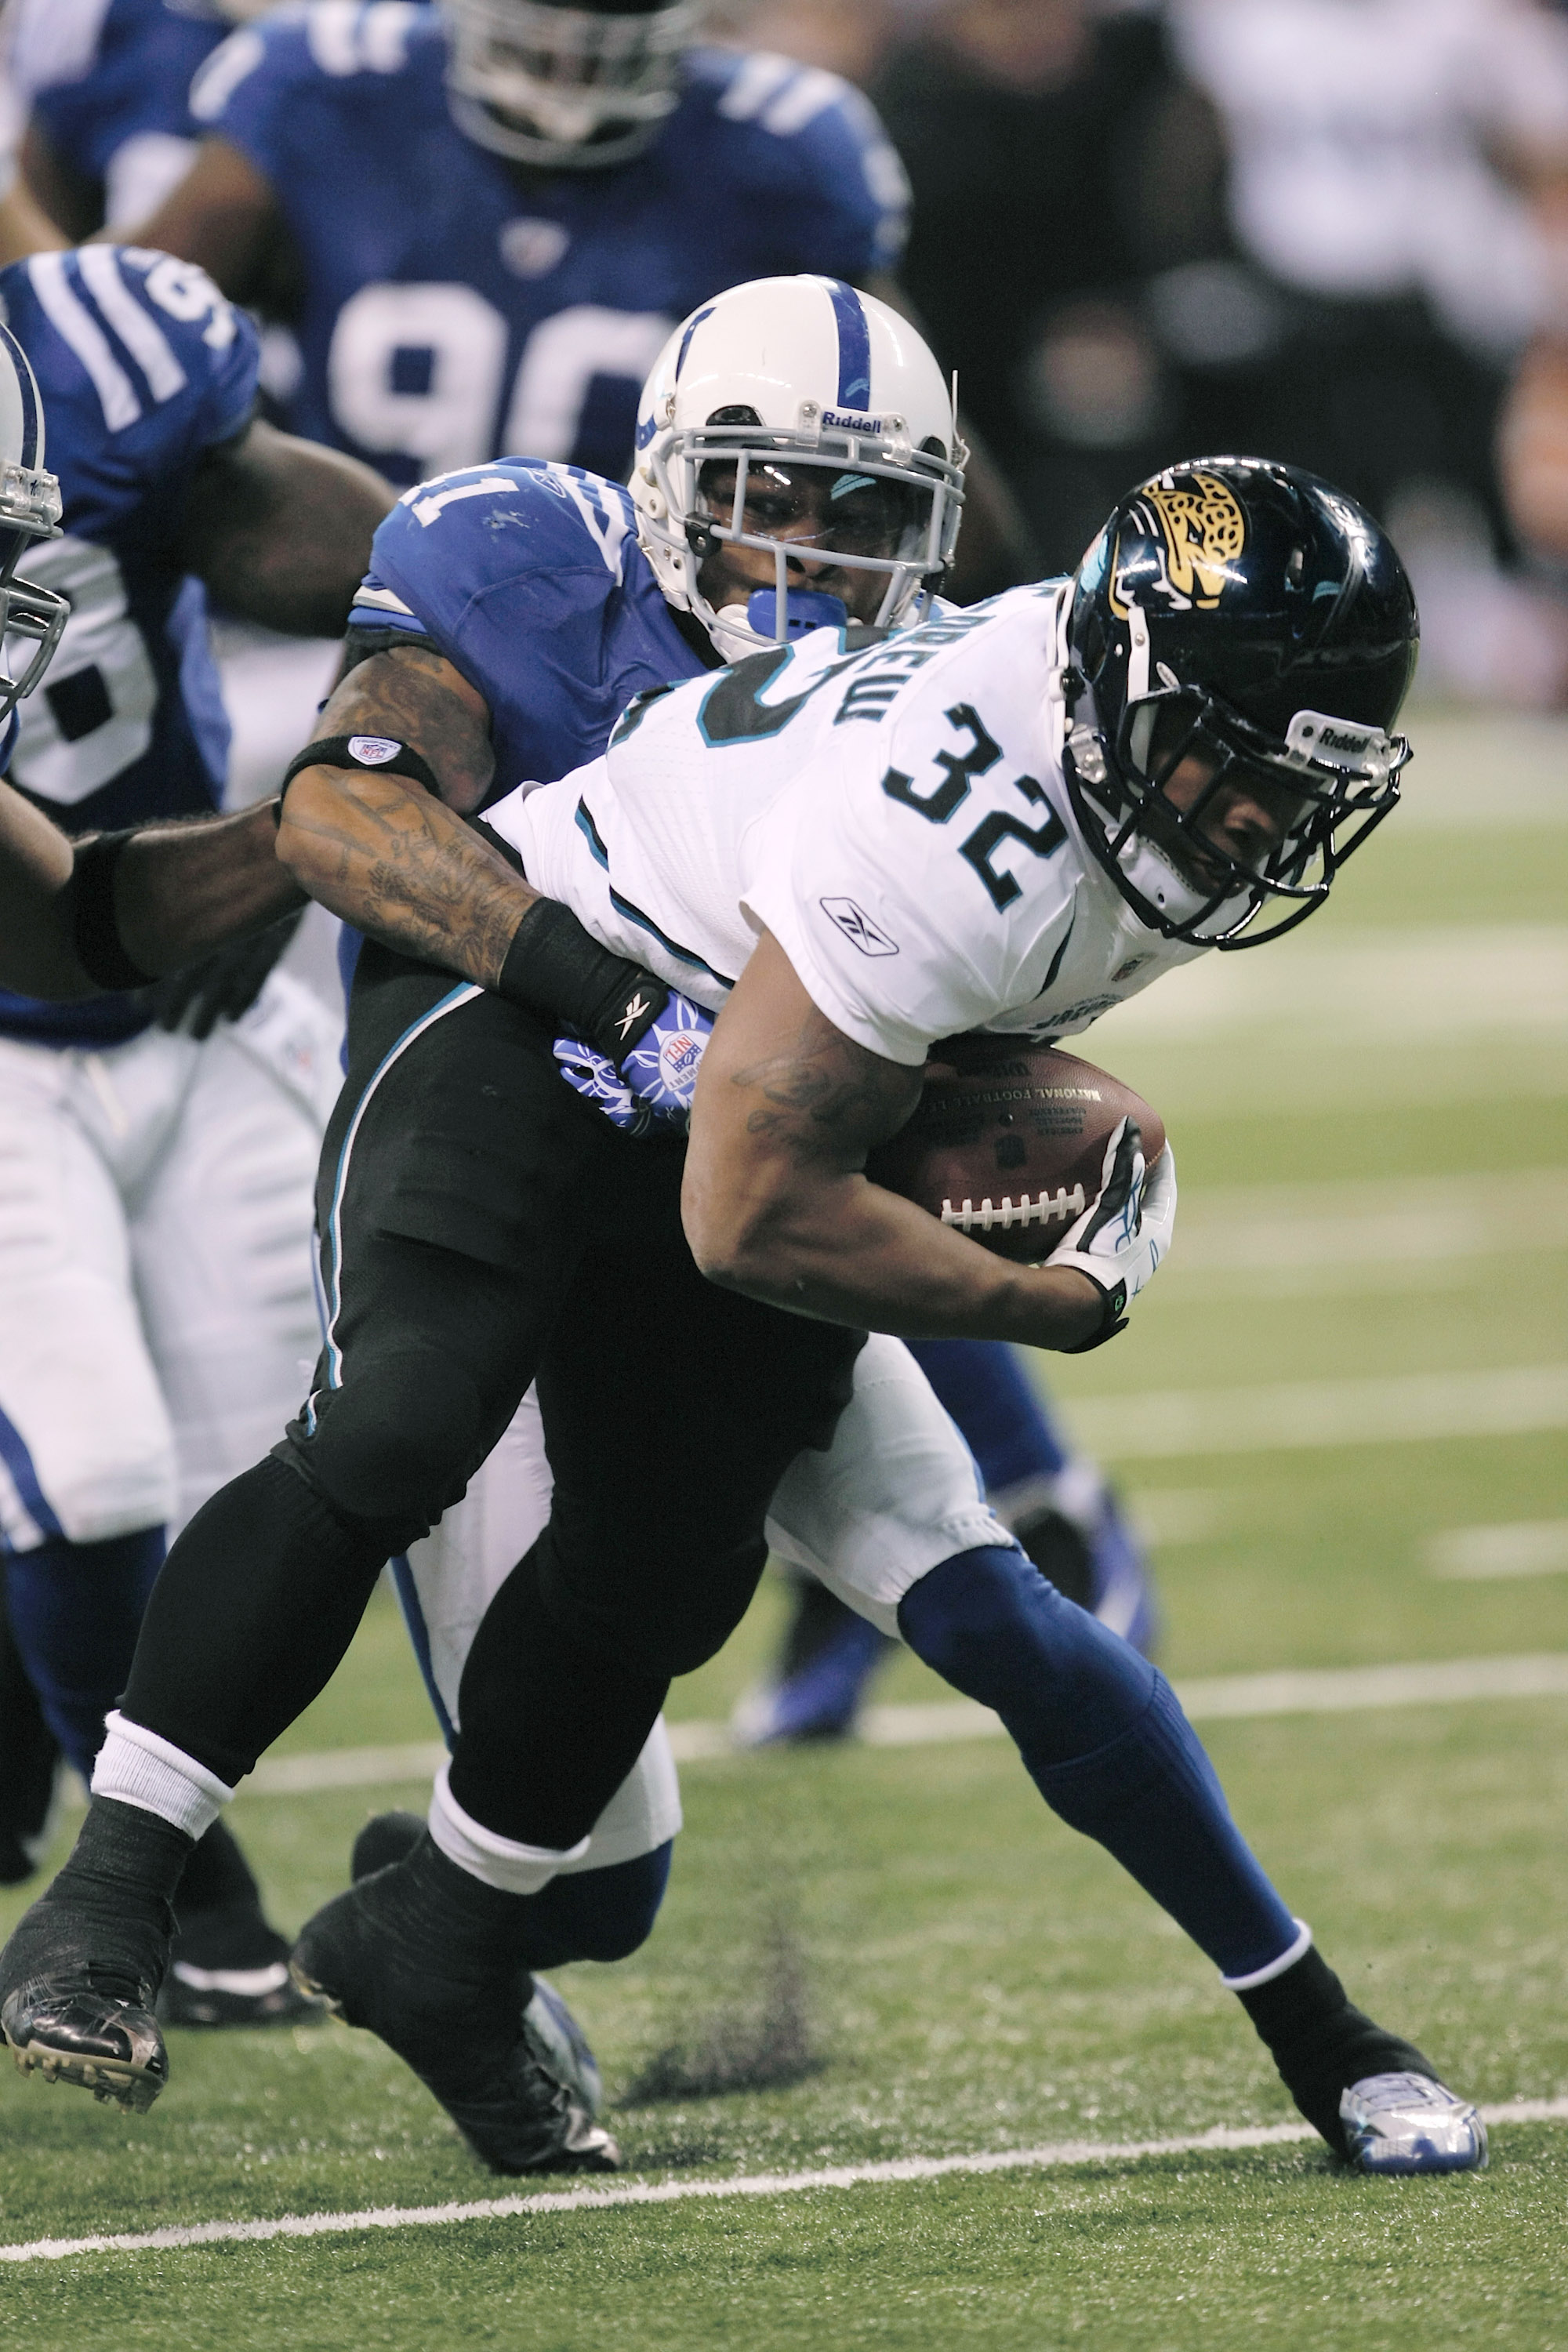 It seems like Indy is always holding the Jaguars back.